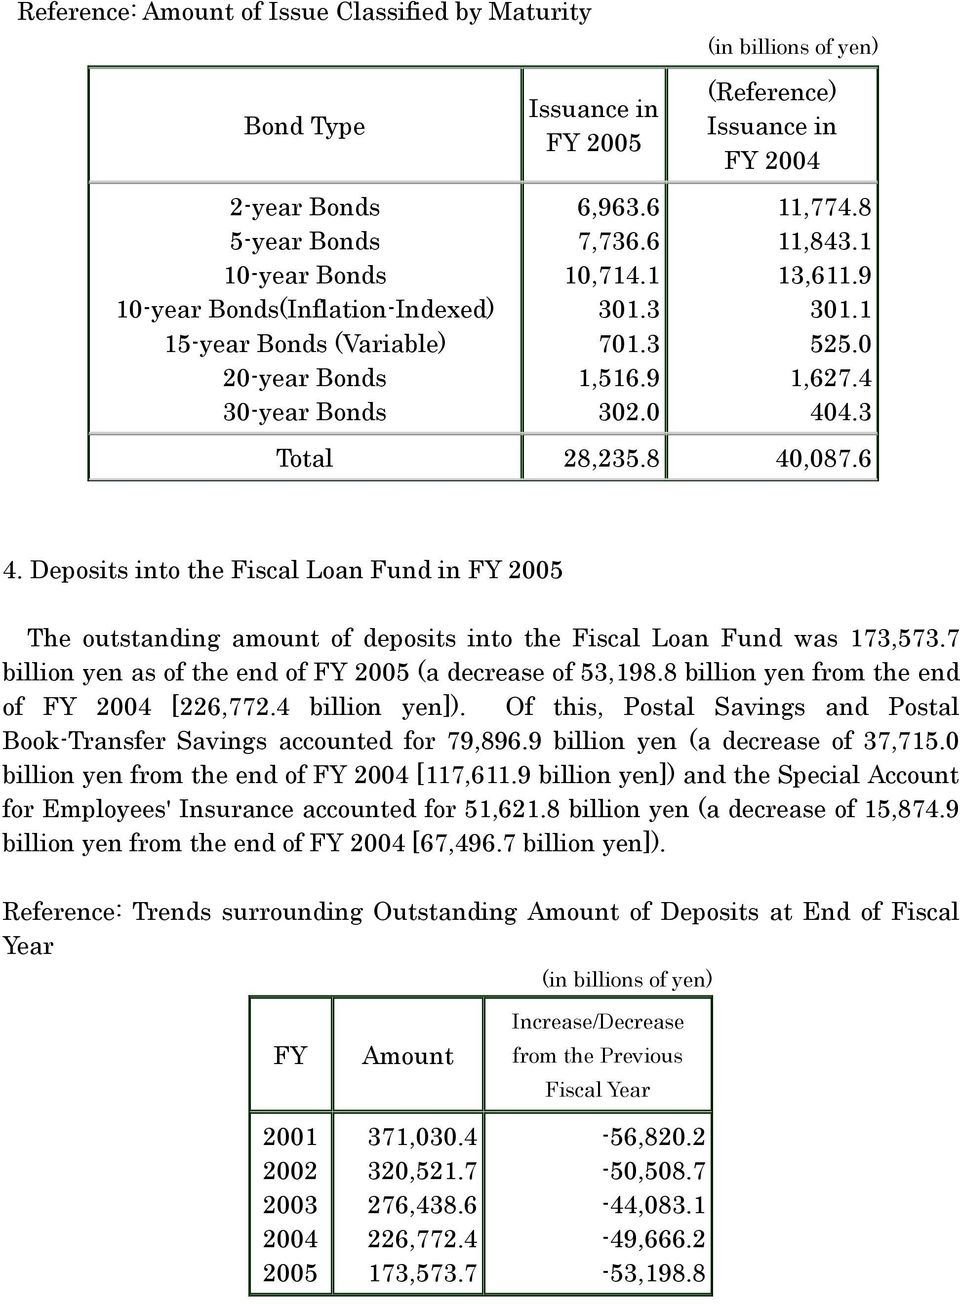 Deposits into the Fiscal Loan Fund in FY 2005 The outstanding amount of deposits into the Fiscal Loan Fund was 173,573.7 billion yen as of the end of FY 2005 (a decrease of 53,198.